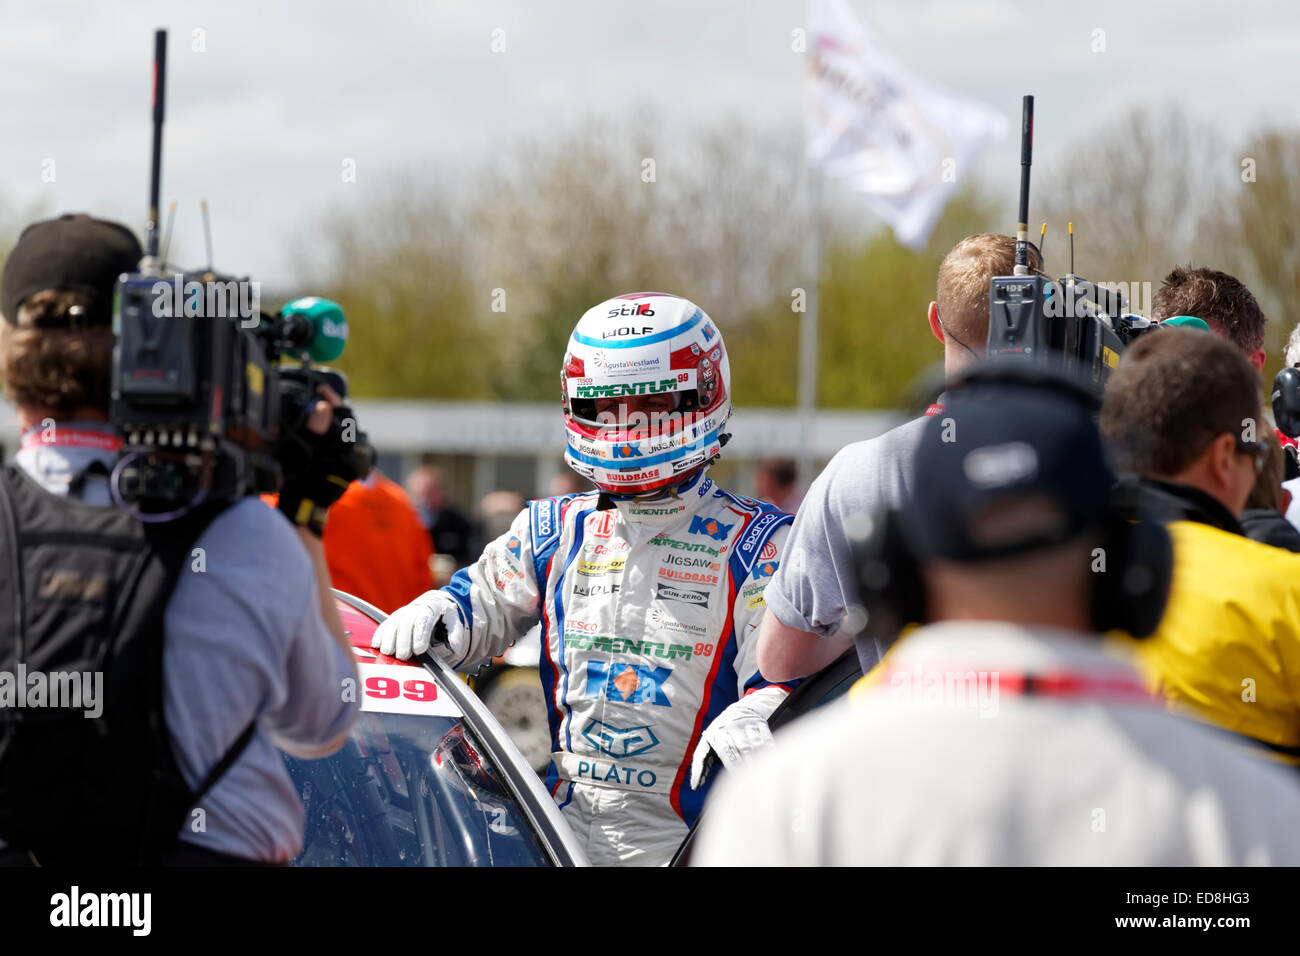 British racing car driver Jason Plato. - Stock Image